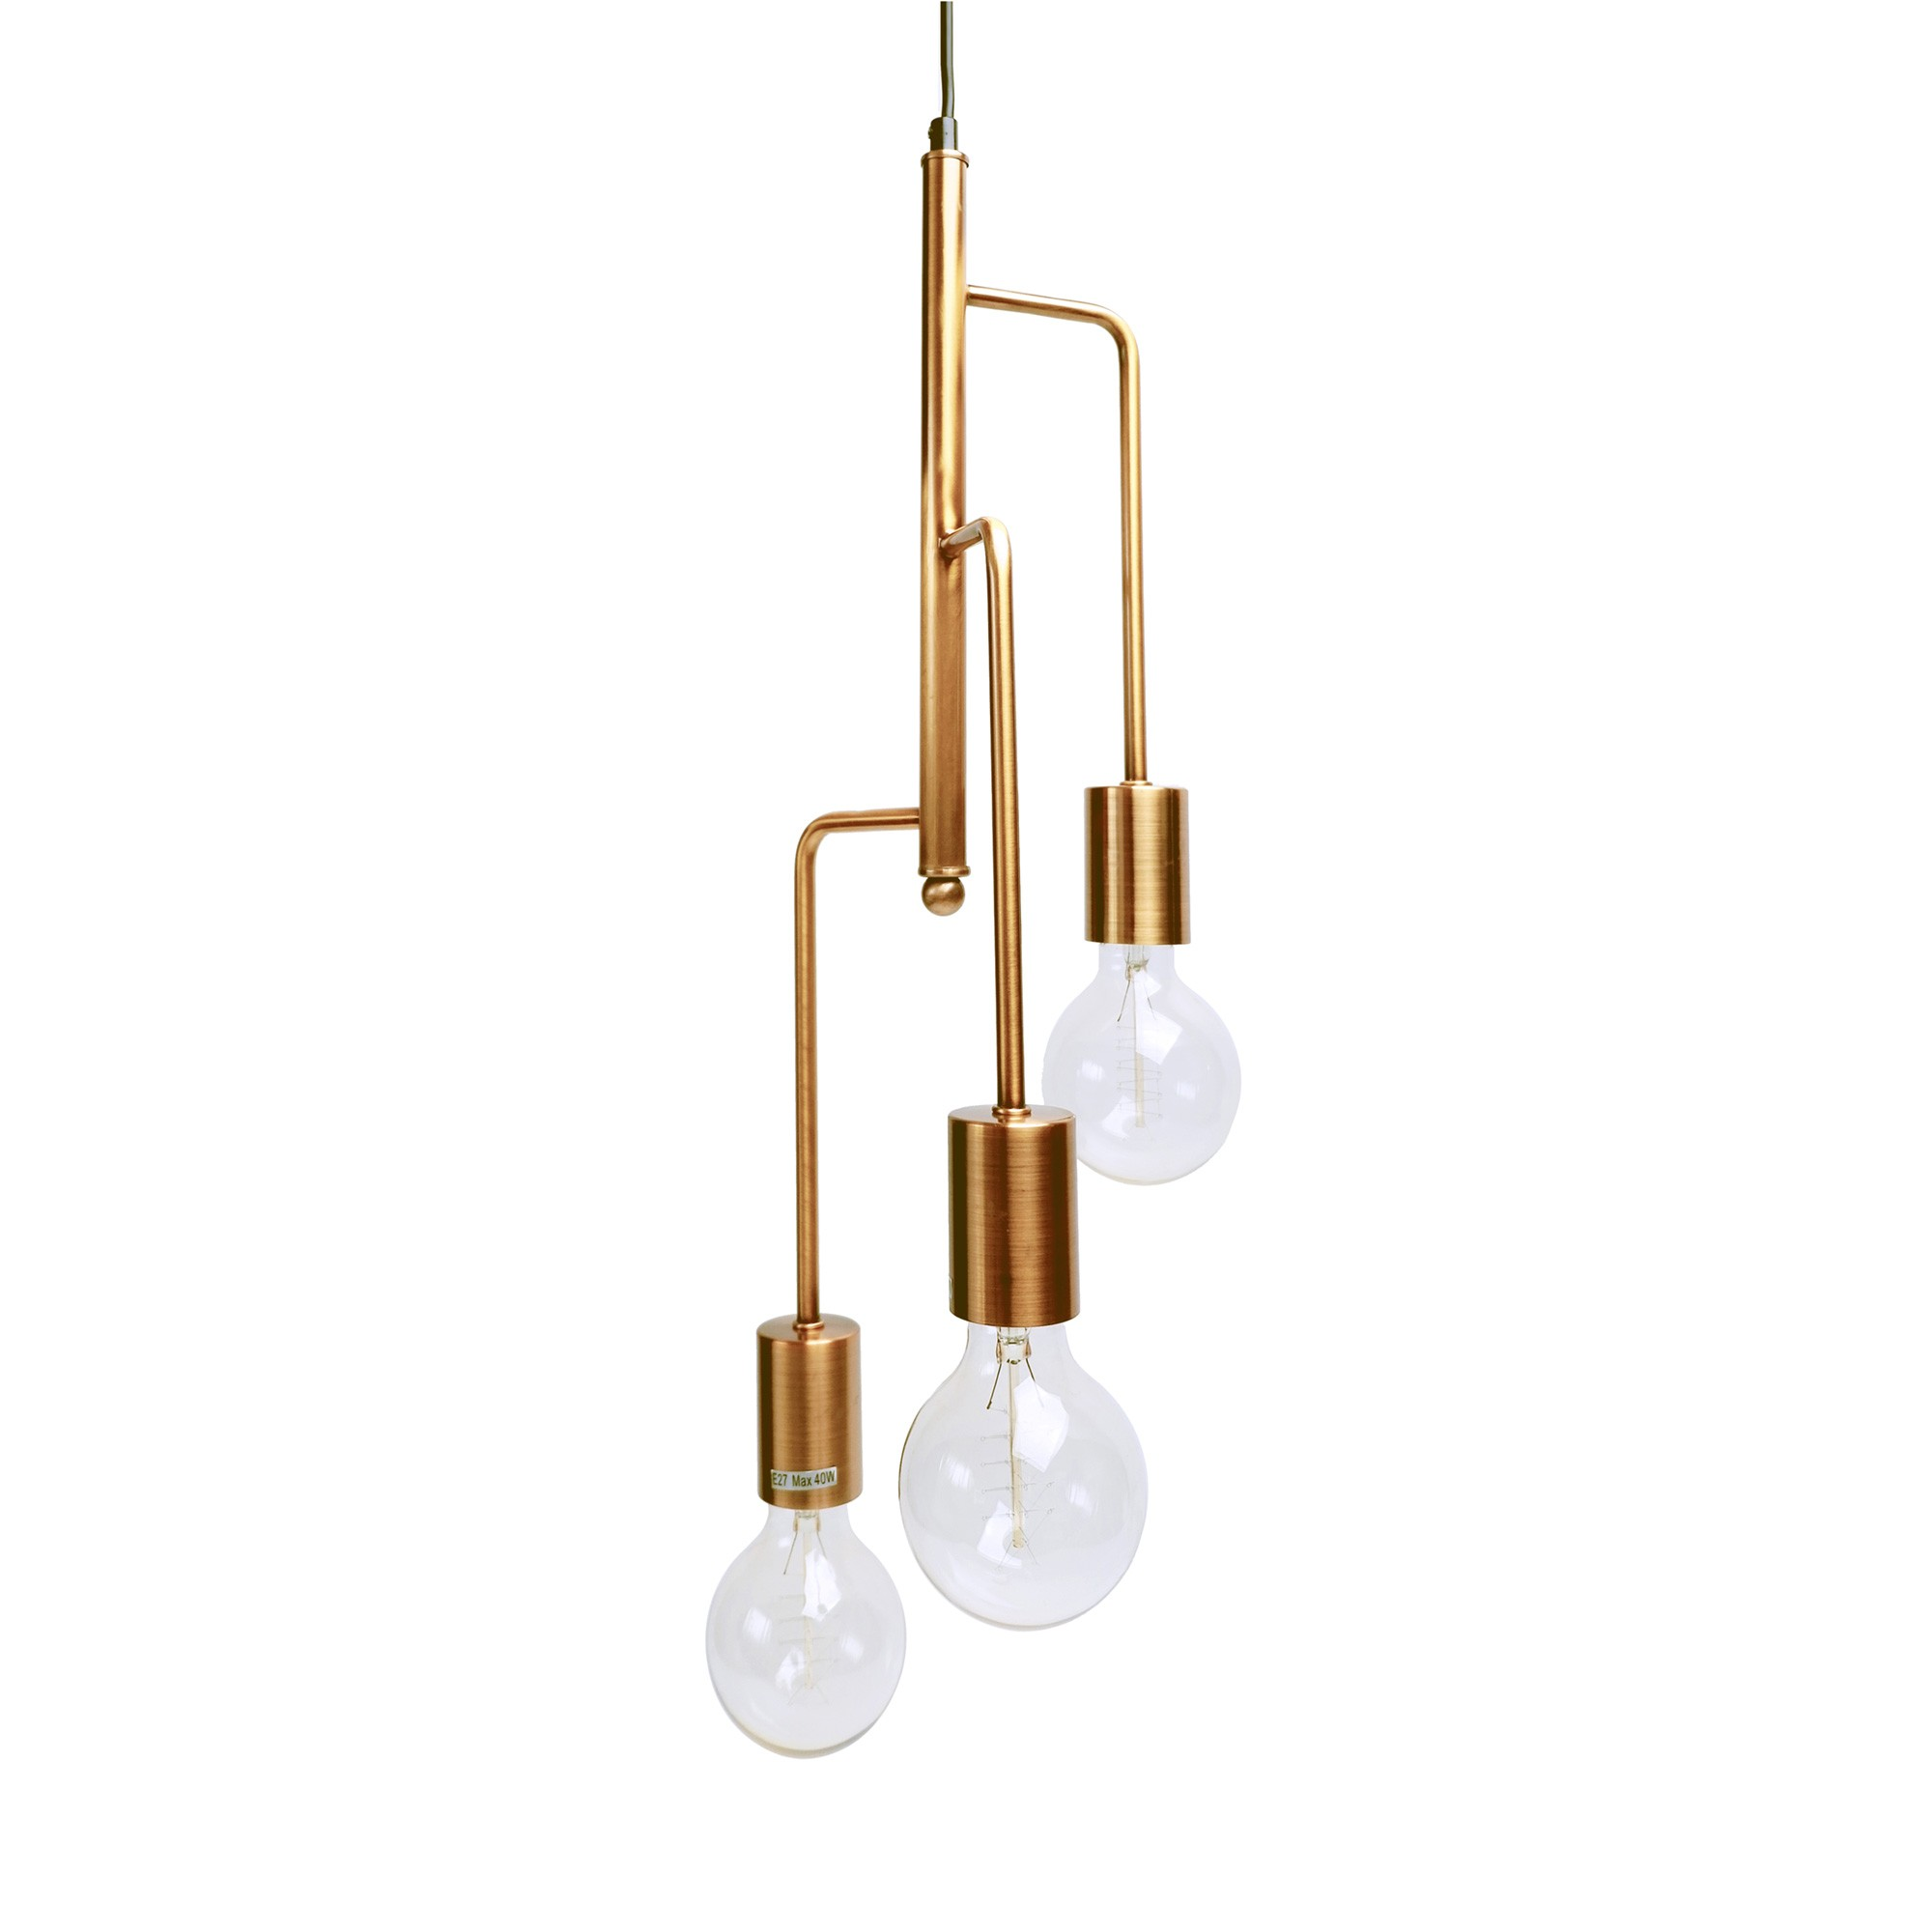 Rohan 3 Tubular Suspension Pendant Light, Satin Chrome